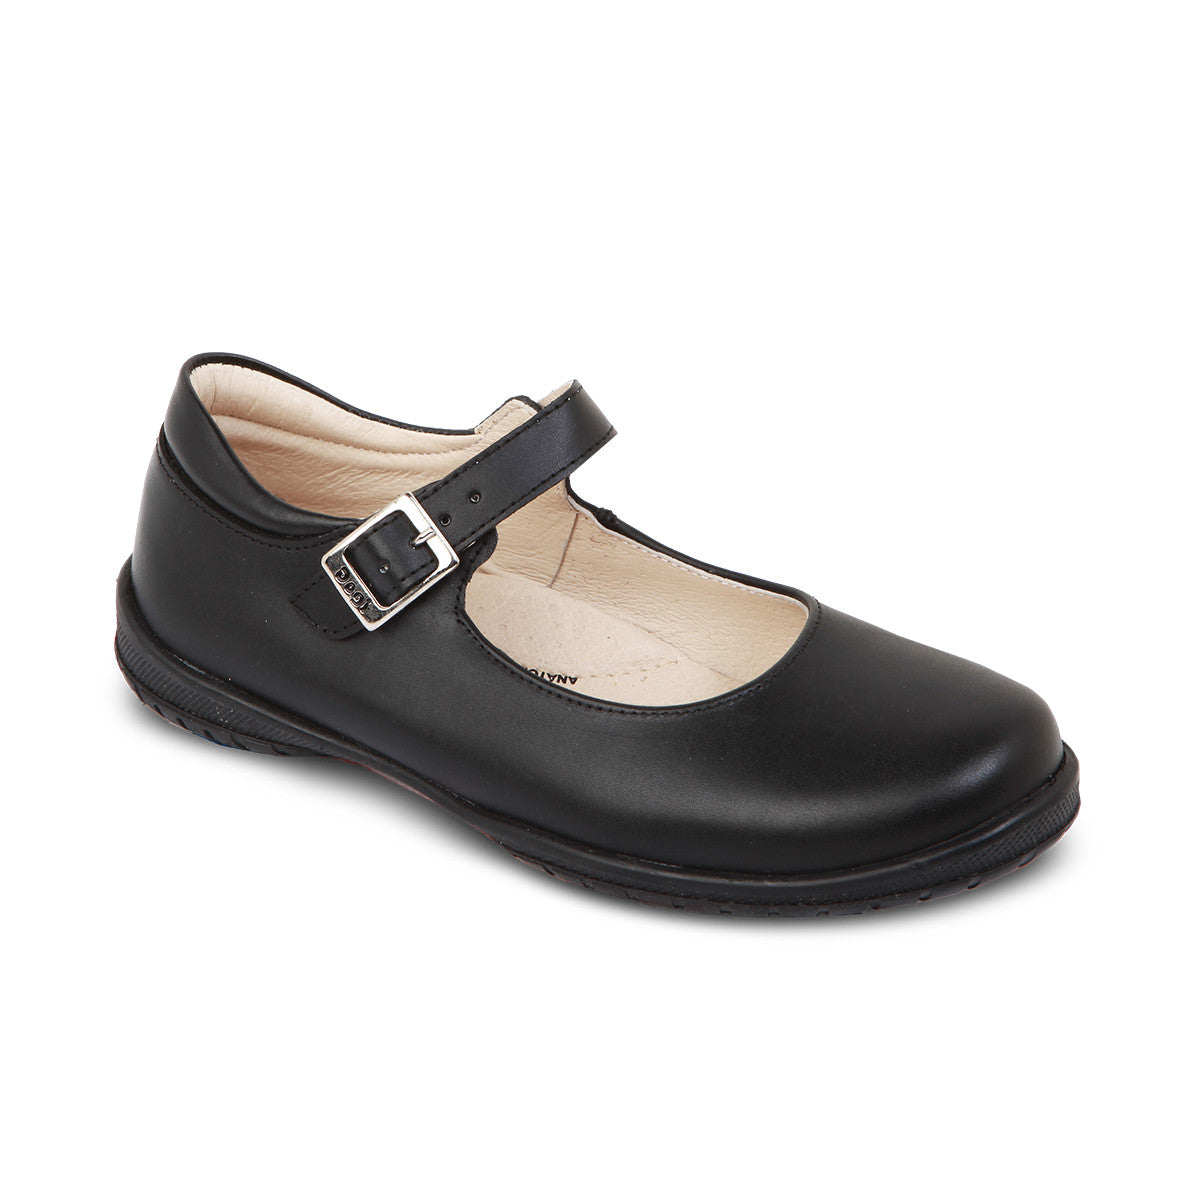 school shoes for